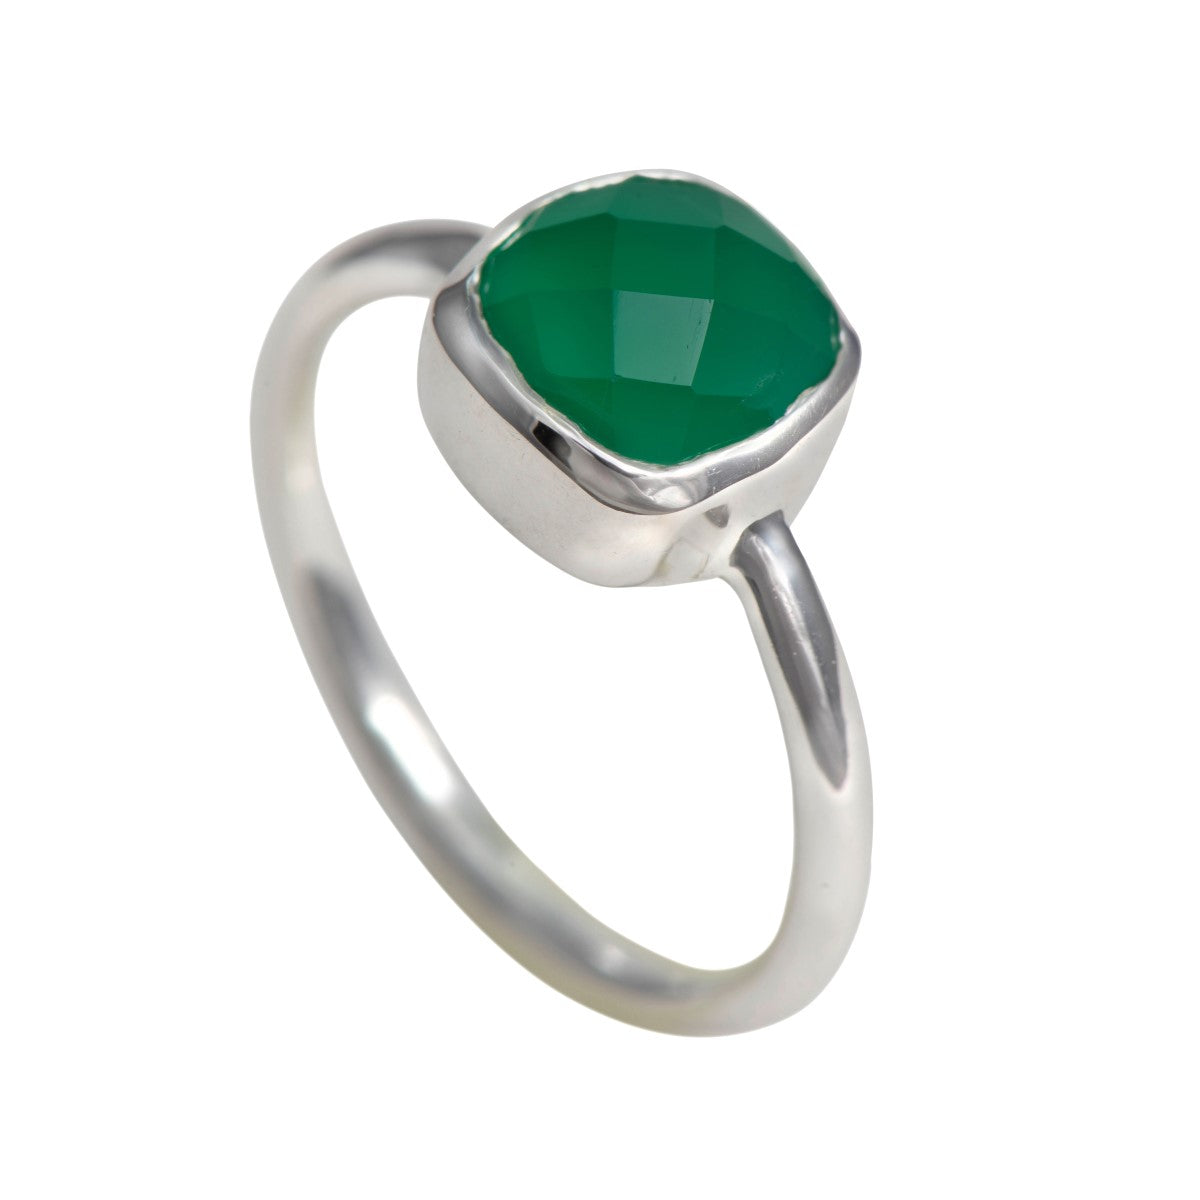 Faceted Square Cut Natural Gemstone Sterling Silver Solitaire Ring - Green Onyx